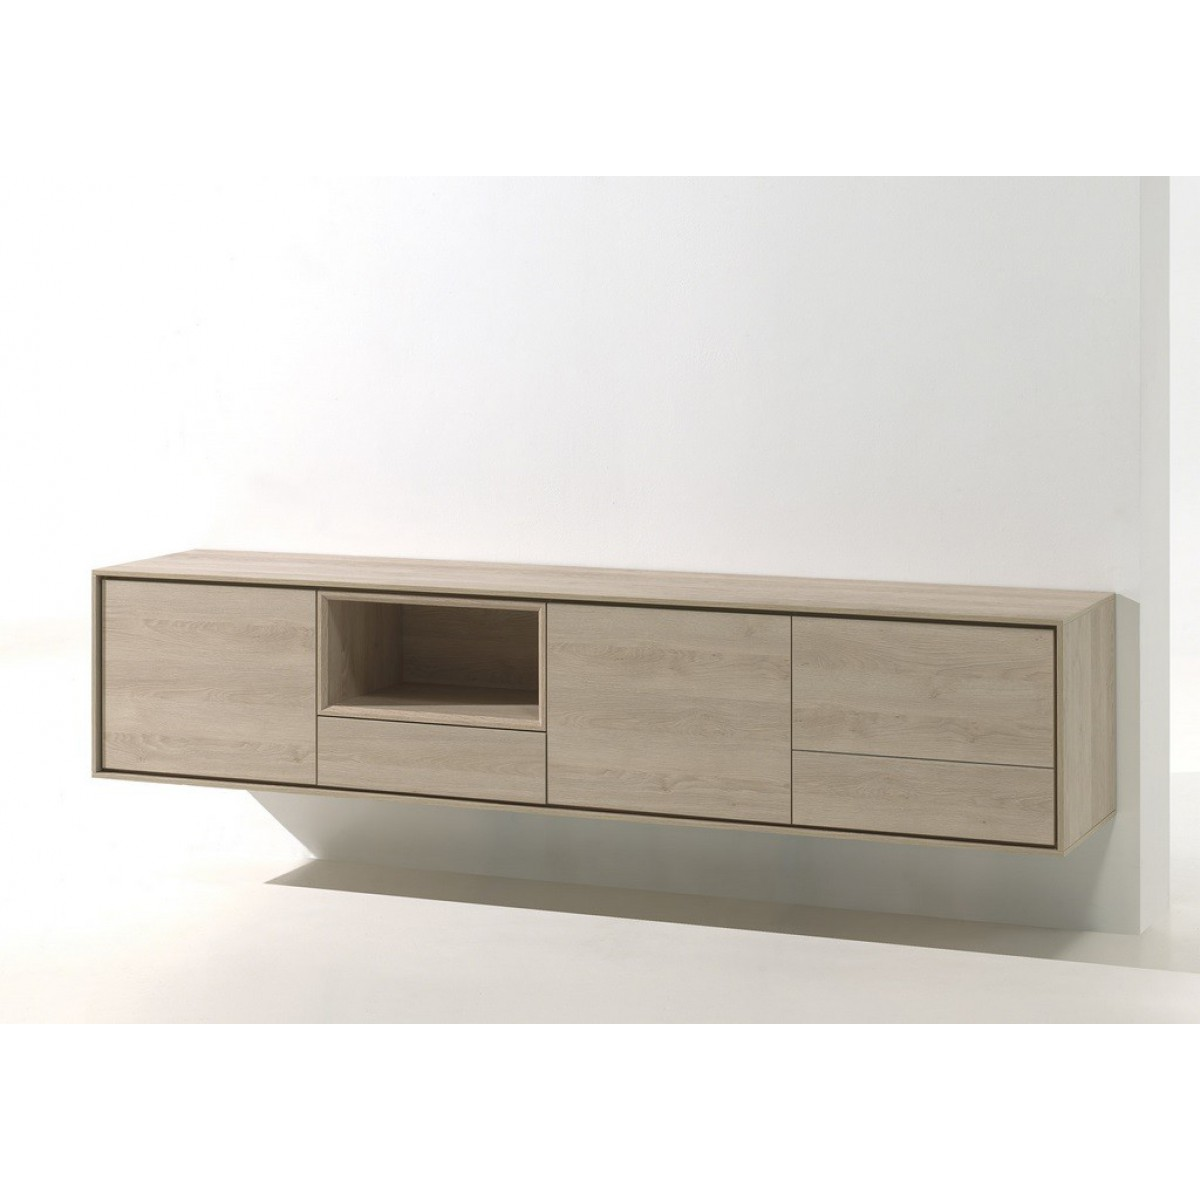 fernseh sideboard beautiful more information with fernseh. Black Bedroom Furniture Sets. Home Design Ideas